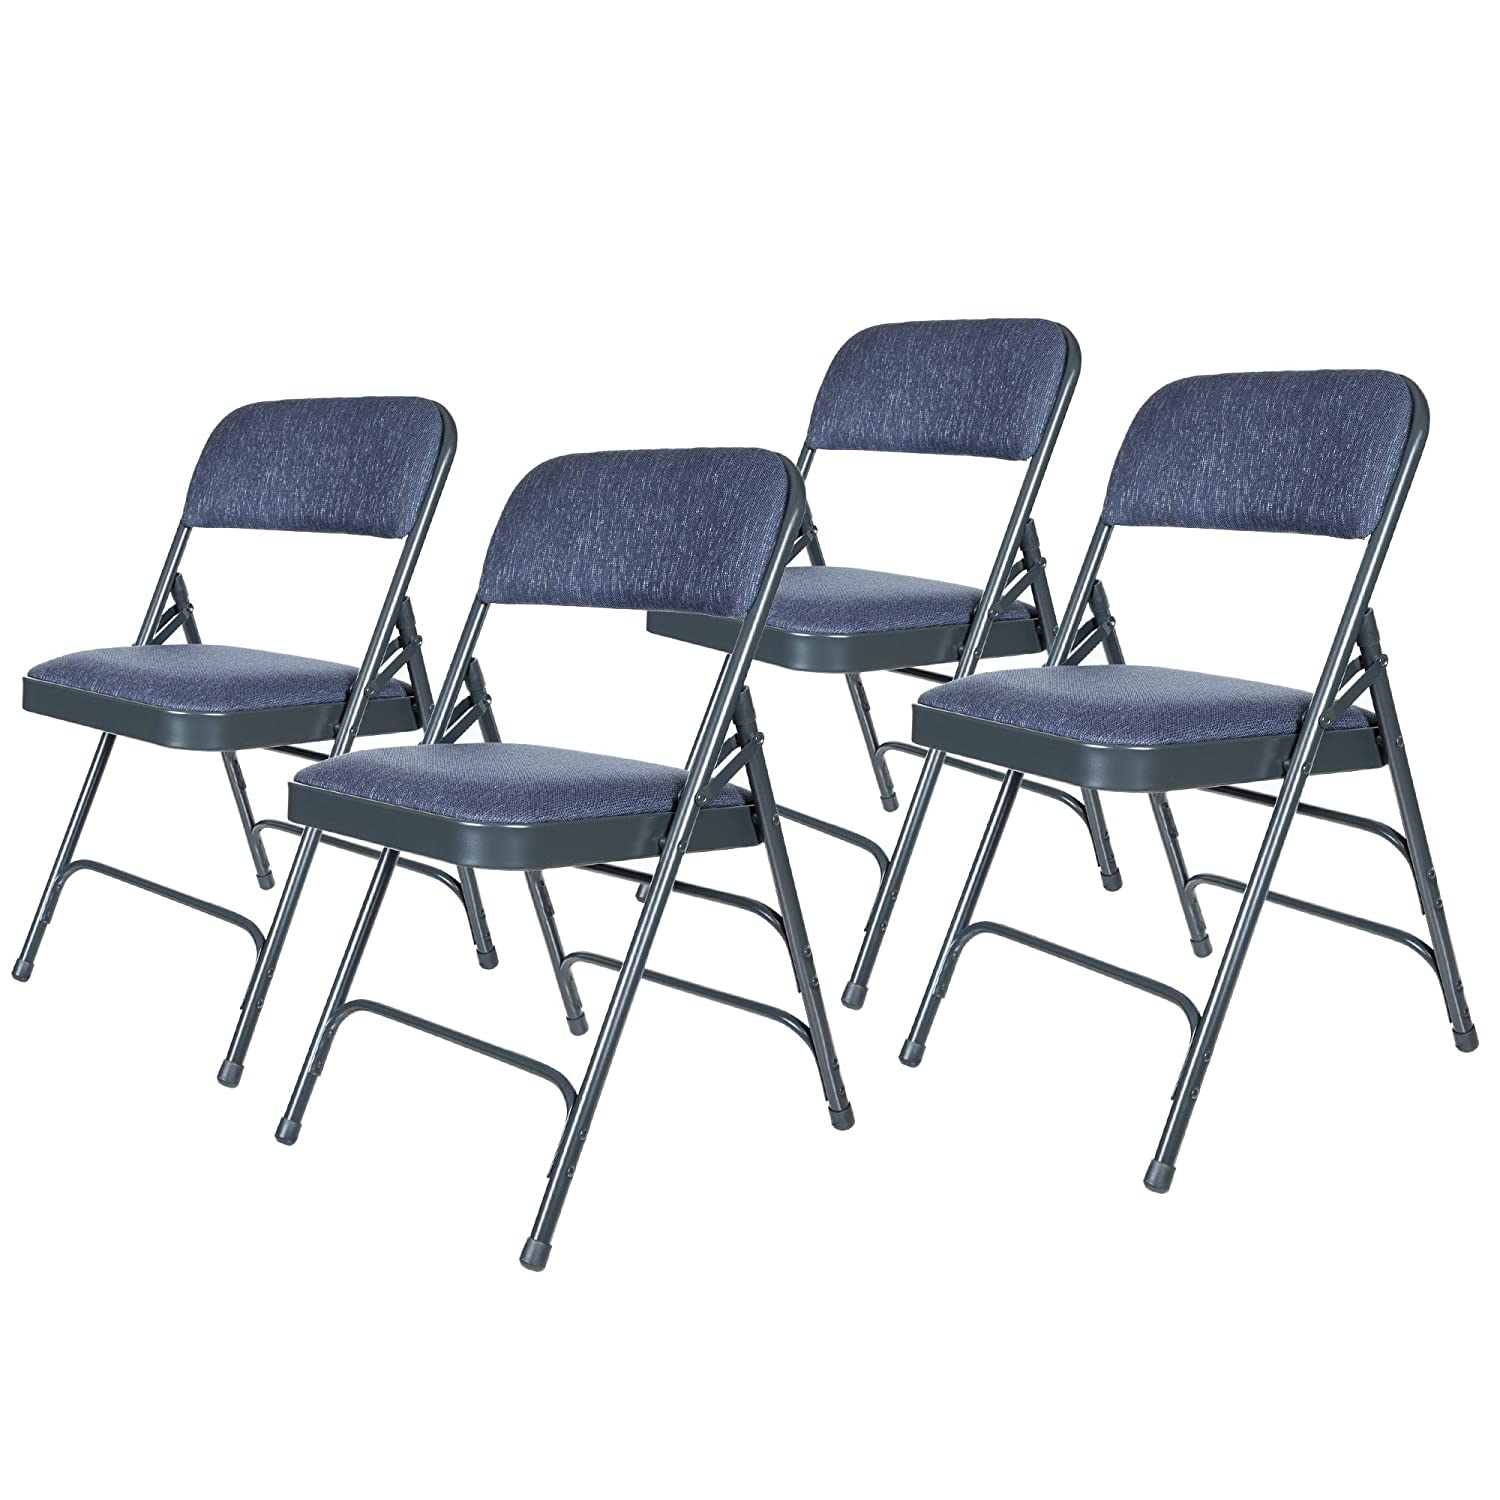 OEF Furnishings Premium Fabric Upholstered Steel Folding Chairs, 4 Pack, Blue